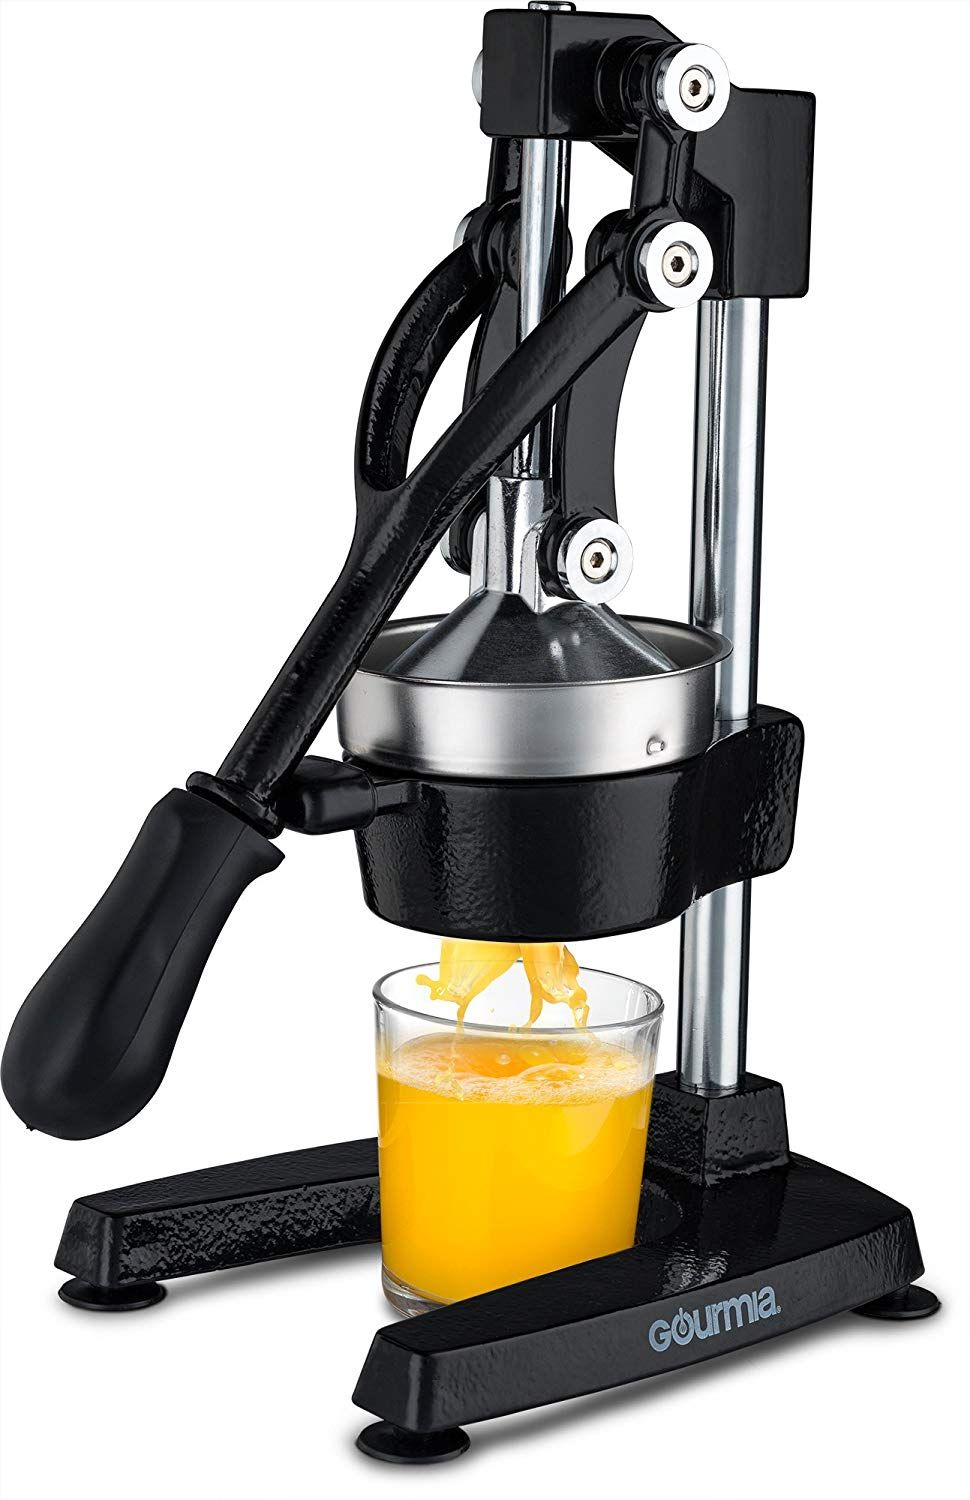 Cuisinart pulp control citrus juicer (ccj-500) demo video youtube.